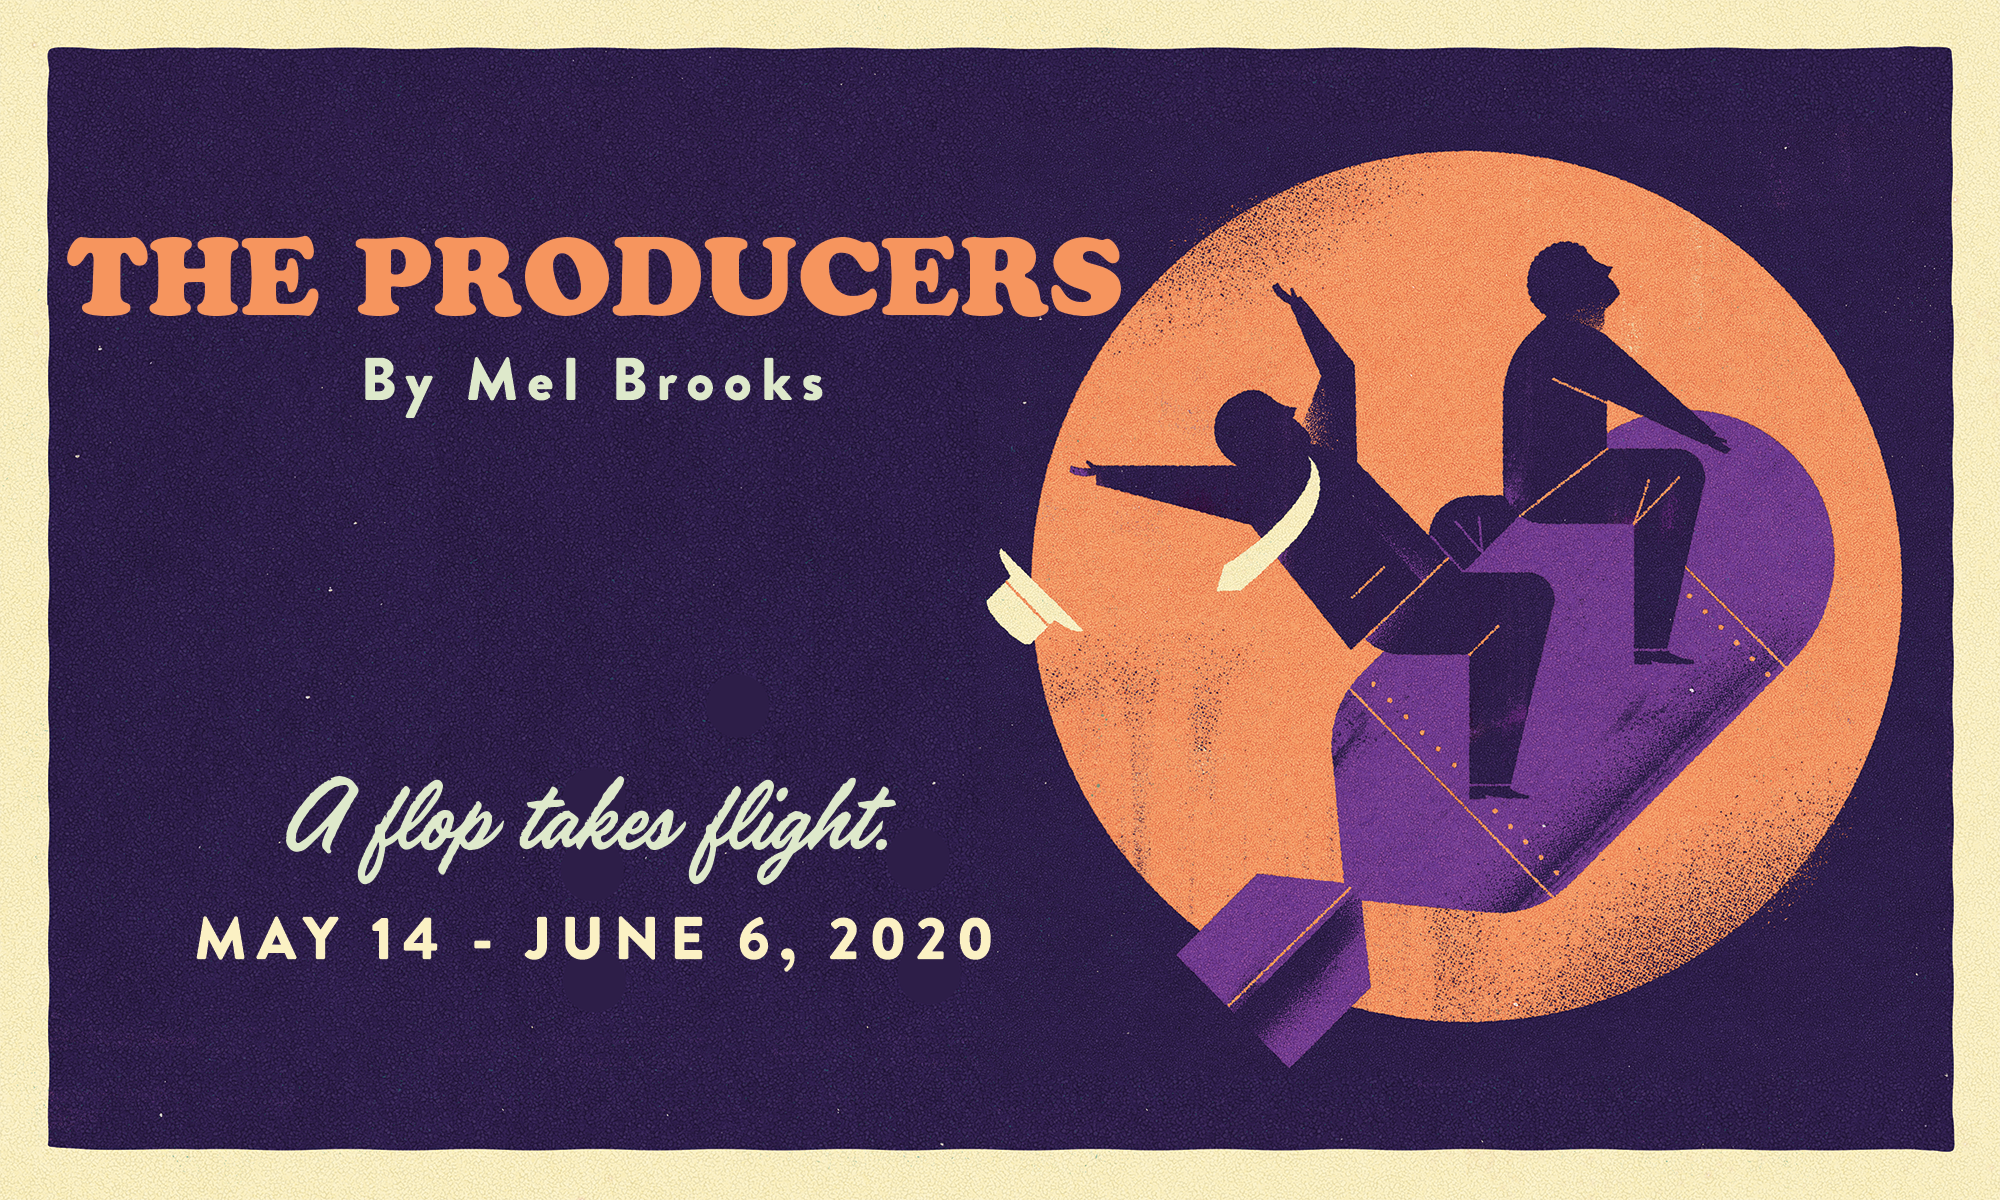 The Producers by Mel Brooks. May 14 - June 6, 2020